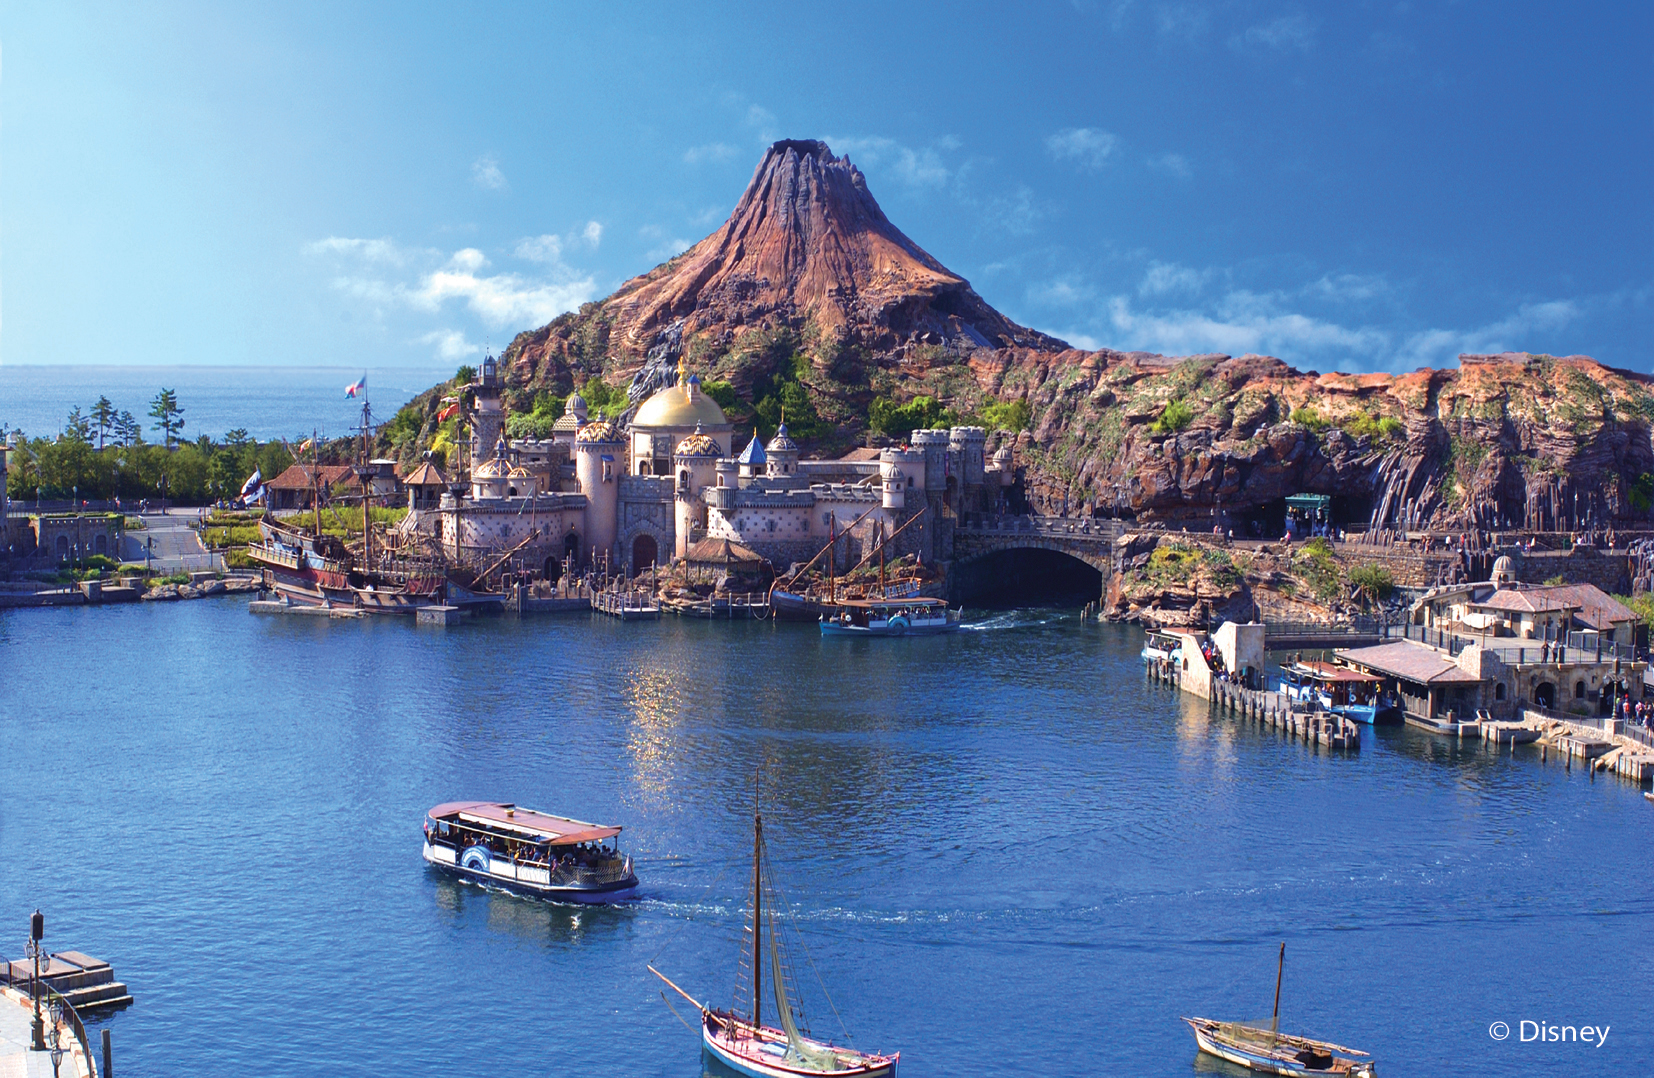 Tokyo DisneySea – A Dream World Becomes Reality!